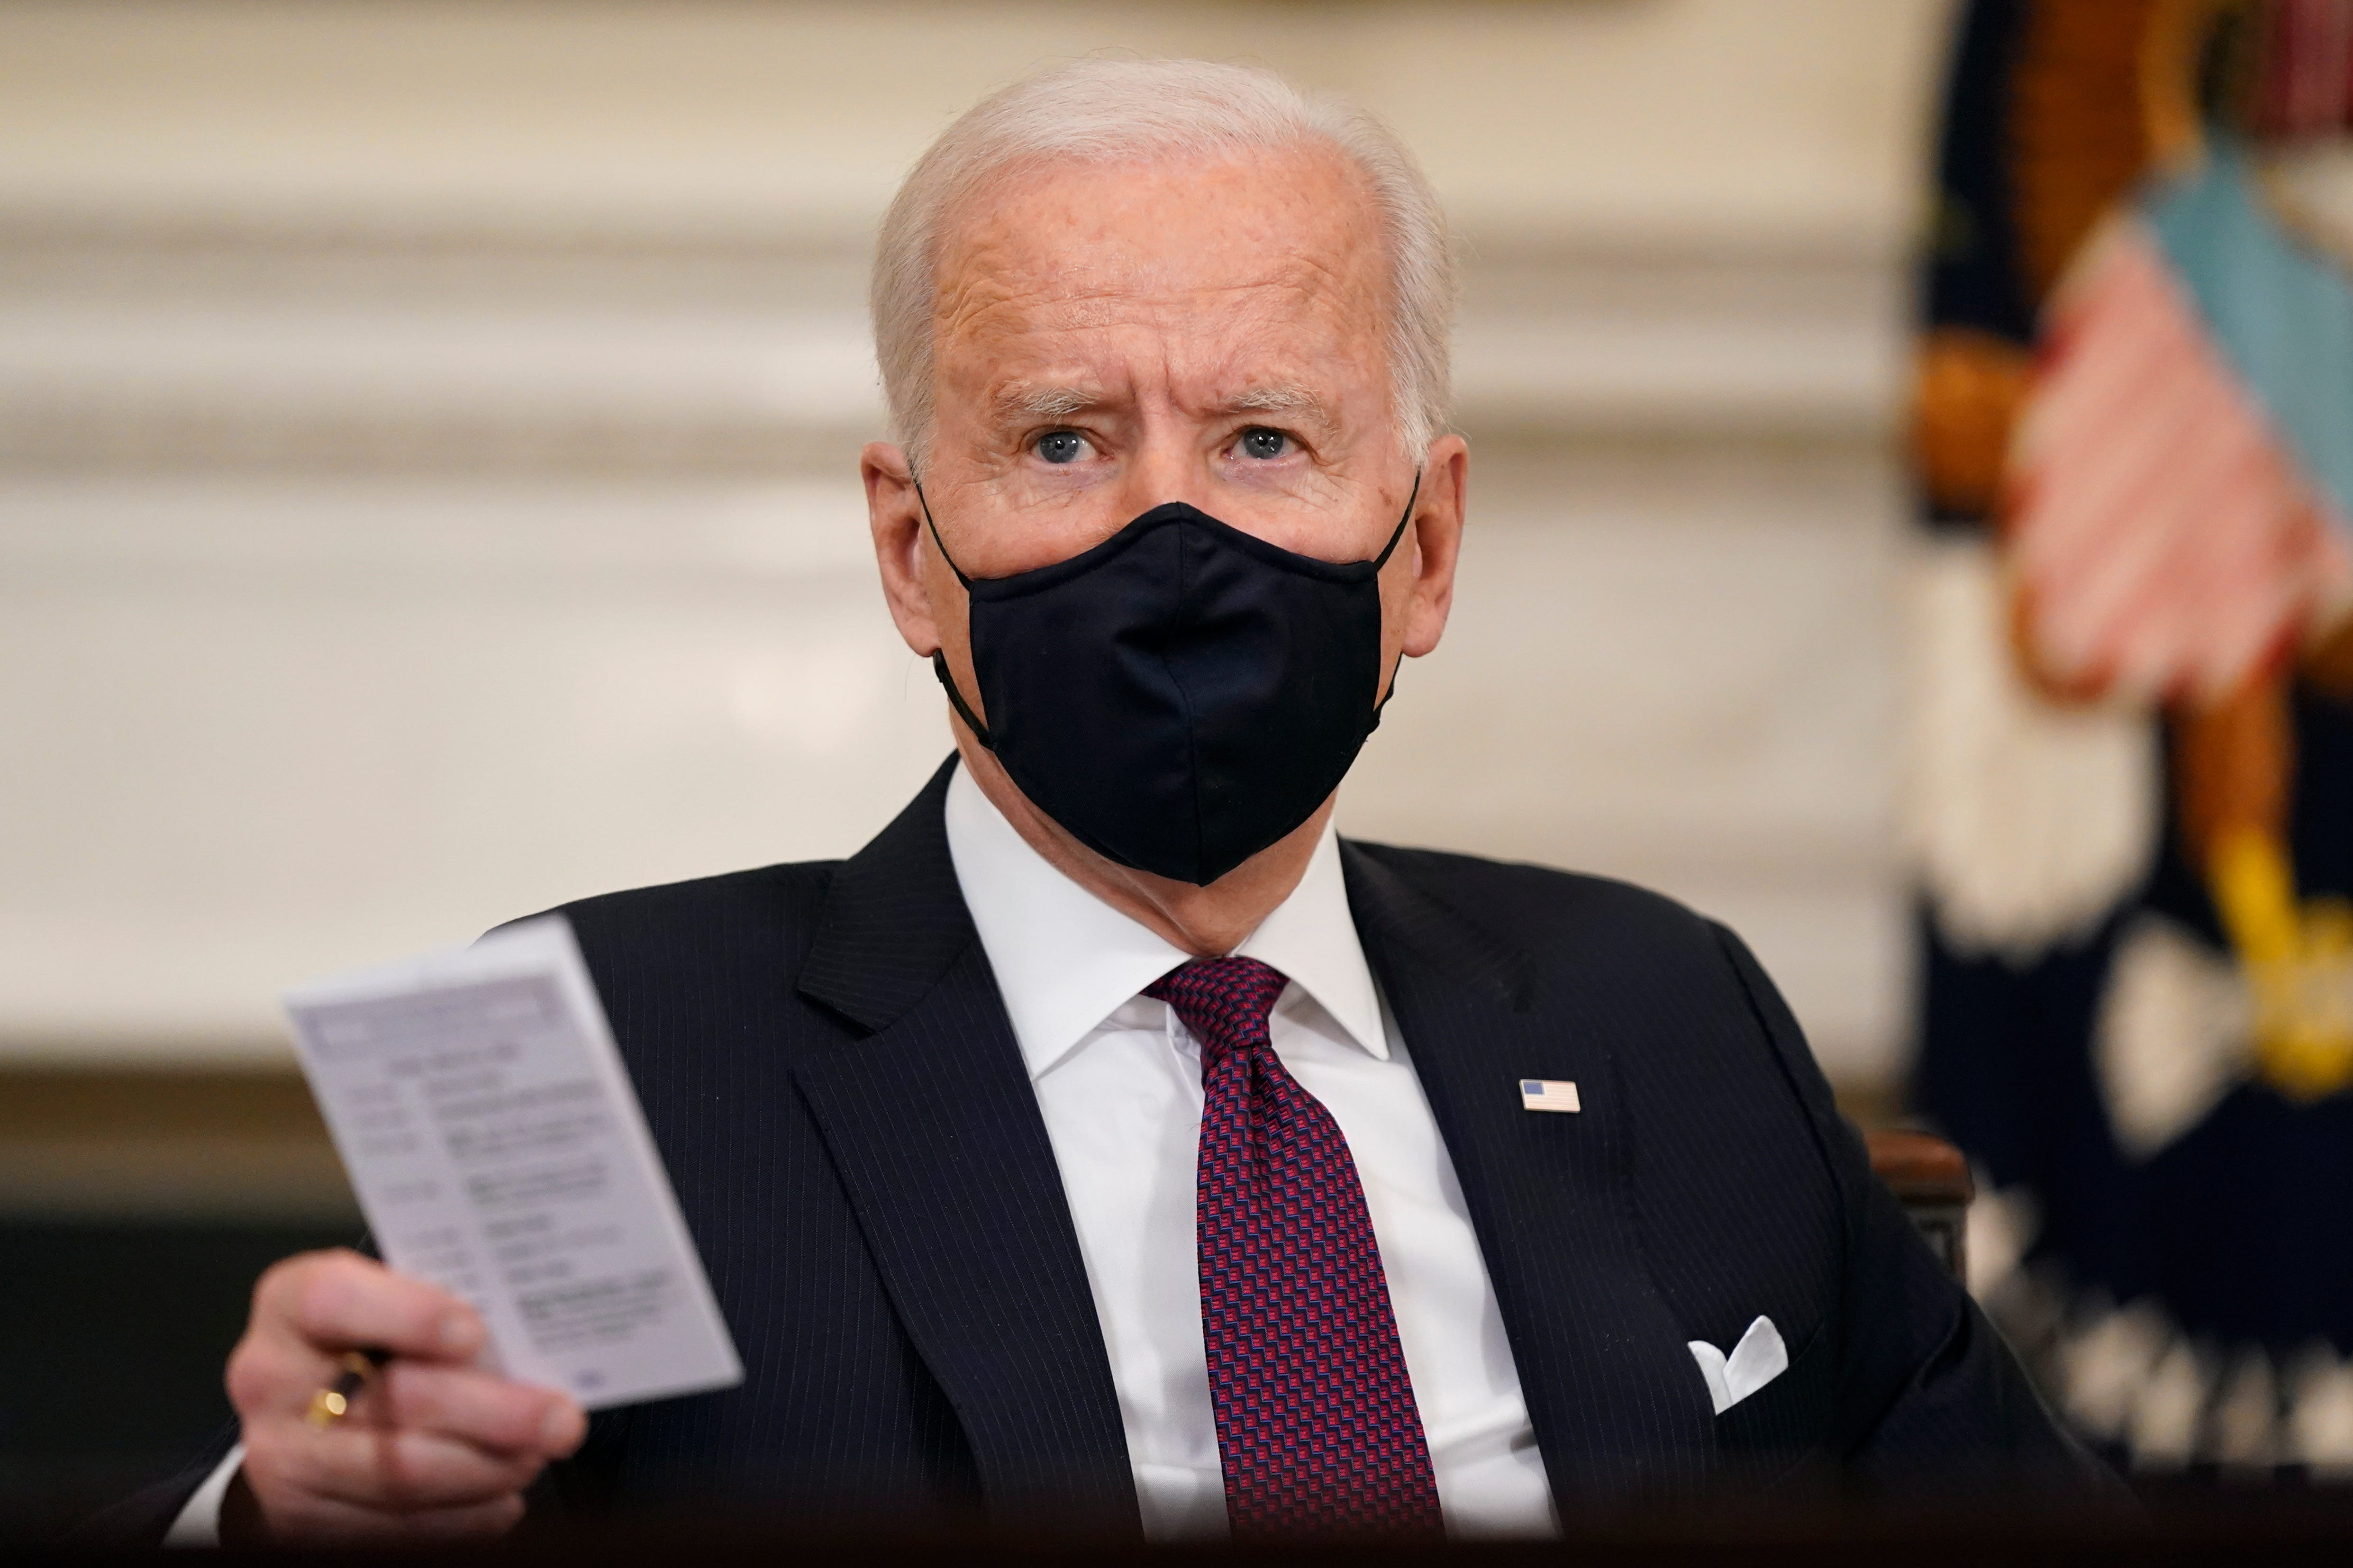 Biden hasn t held a news conference or been imitated on  SNL  in his presidency. Why not?